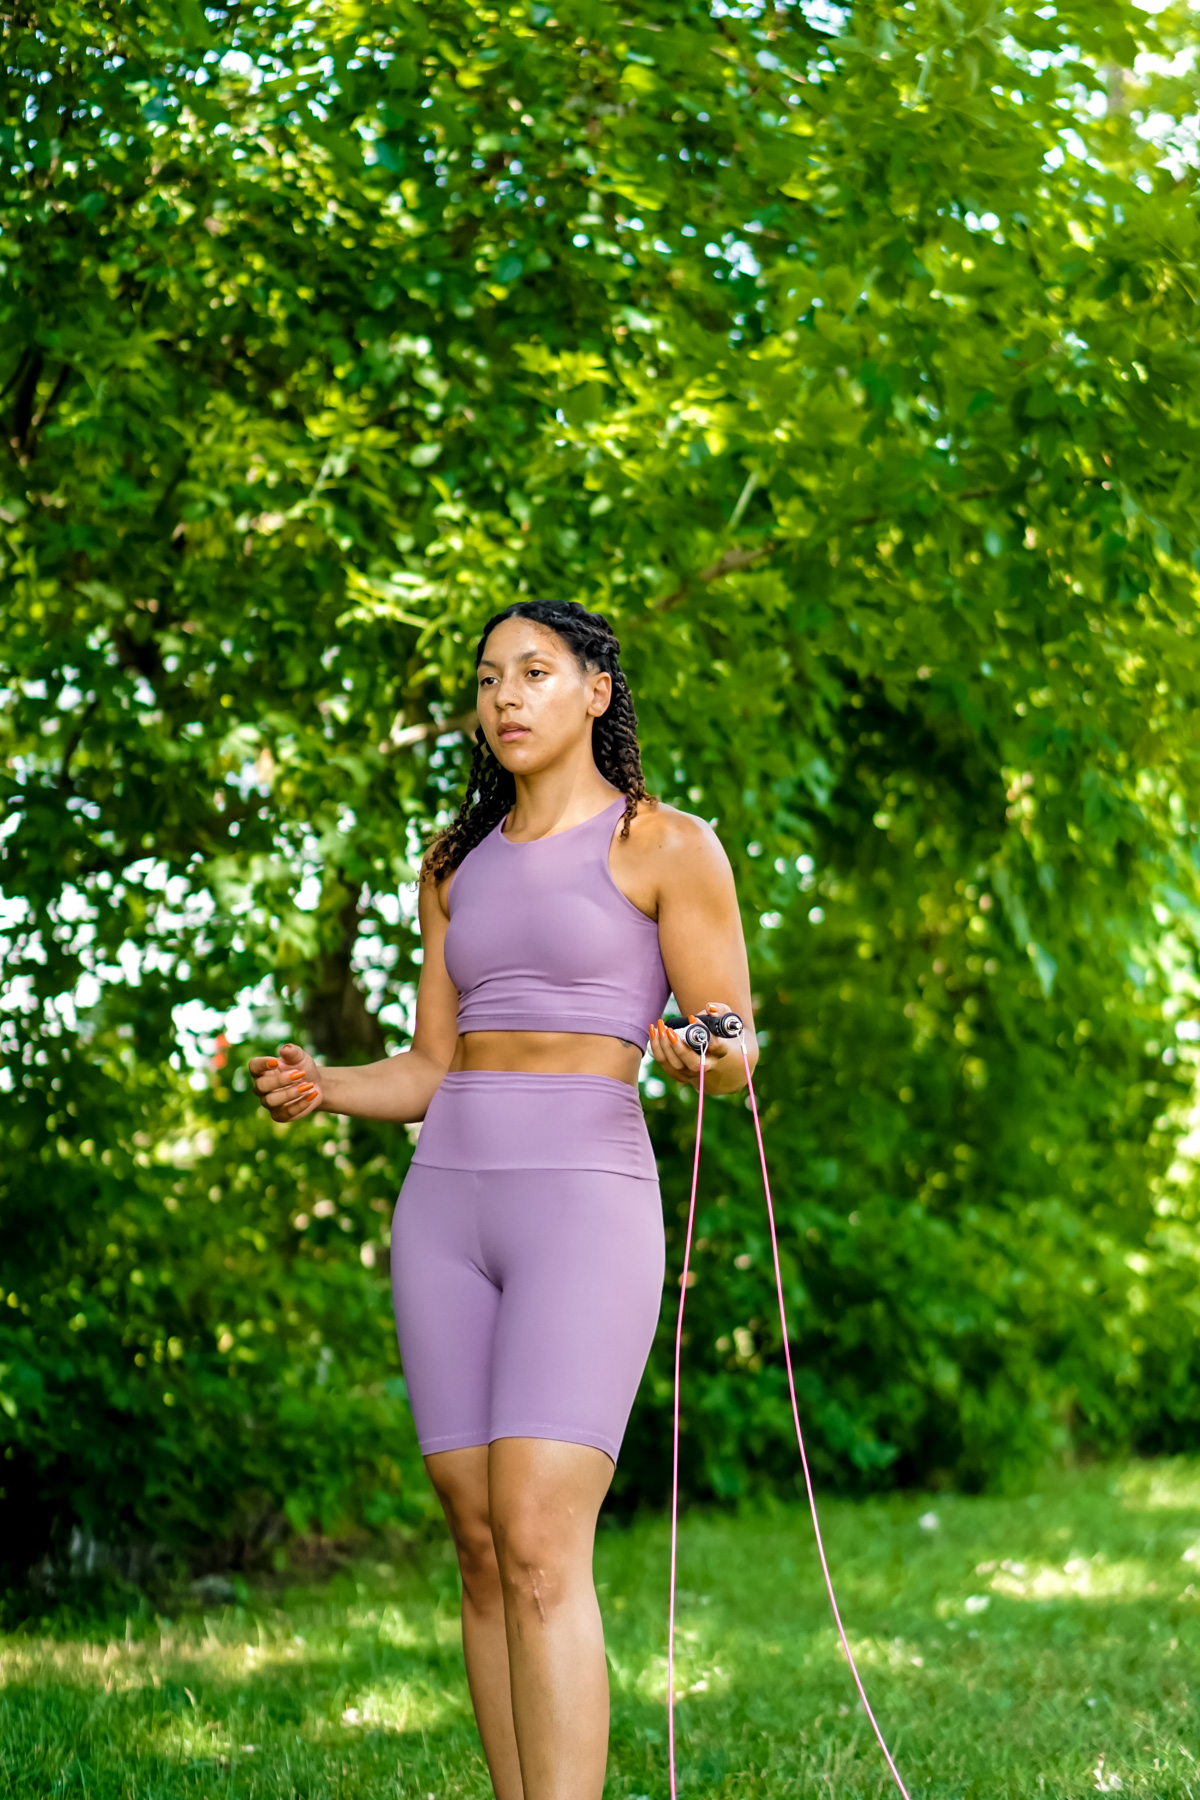 black wellness blogger, workout clothes, black owned business, black girl fashion, support black influencers, beach hours workout clothes